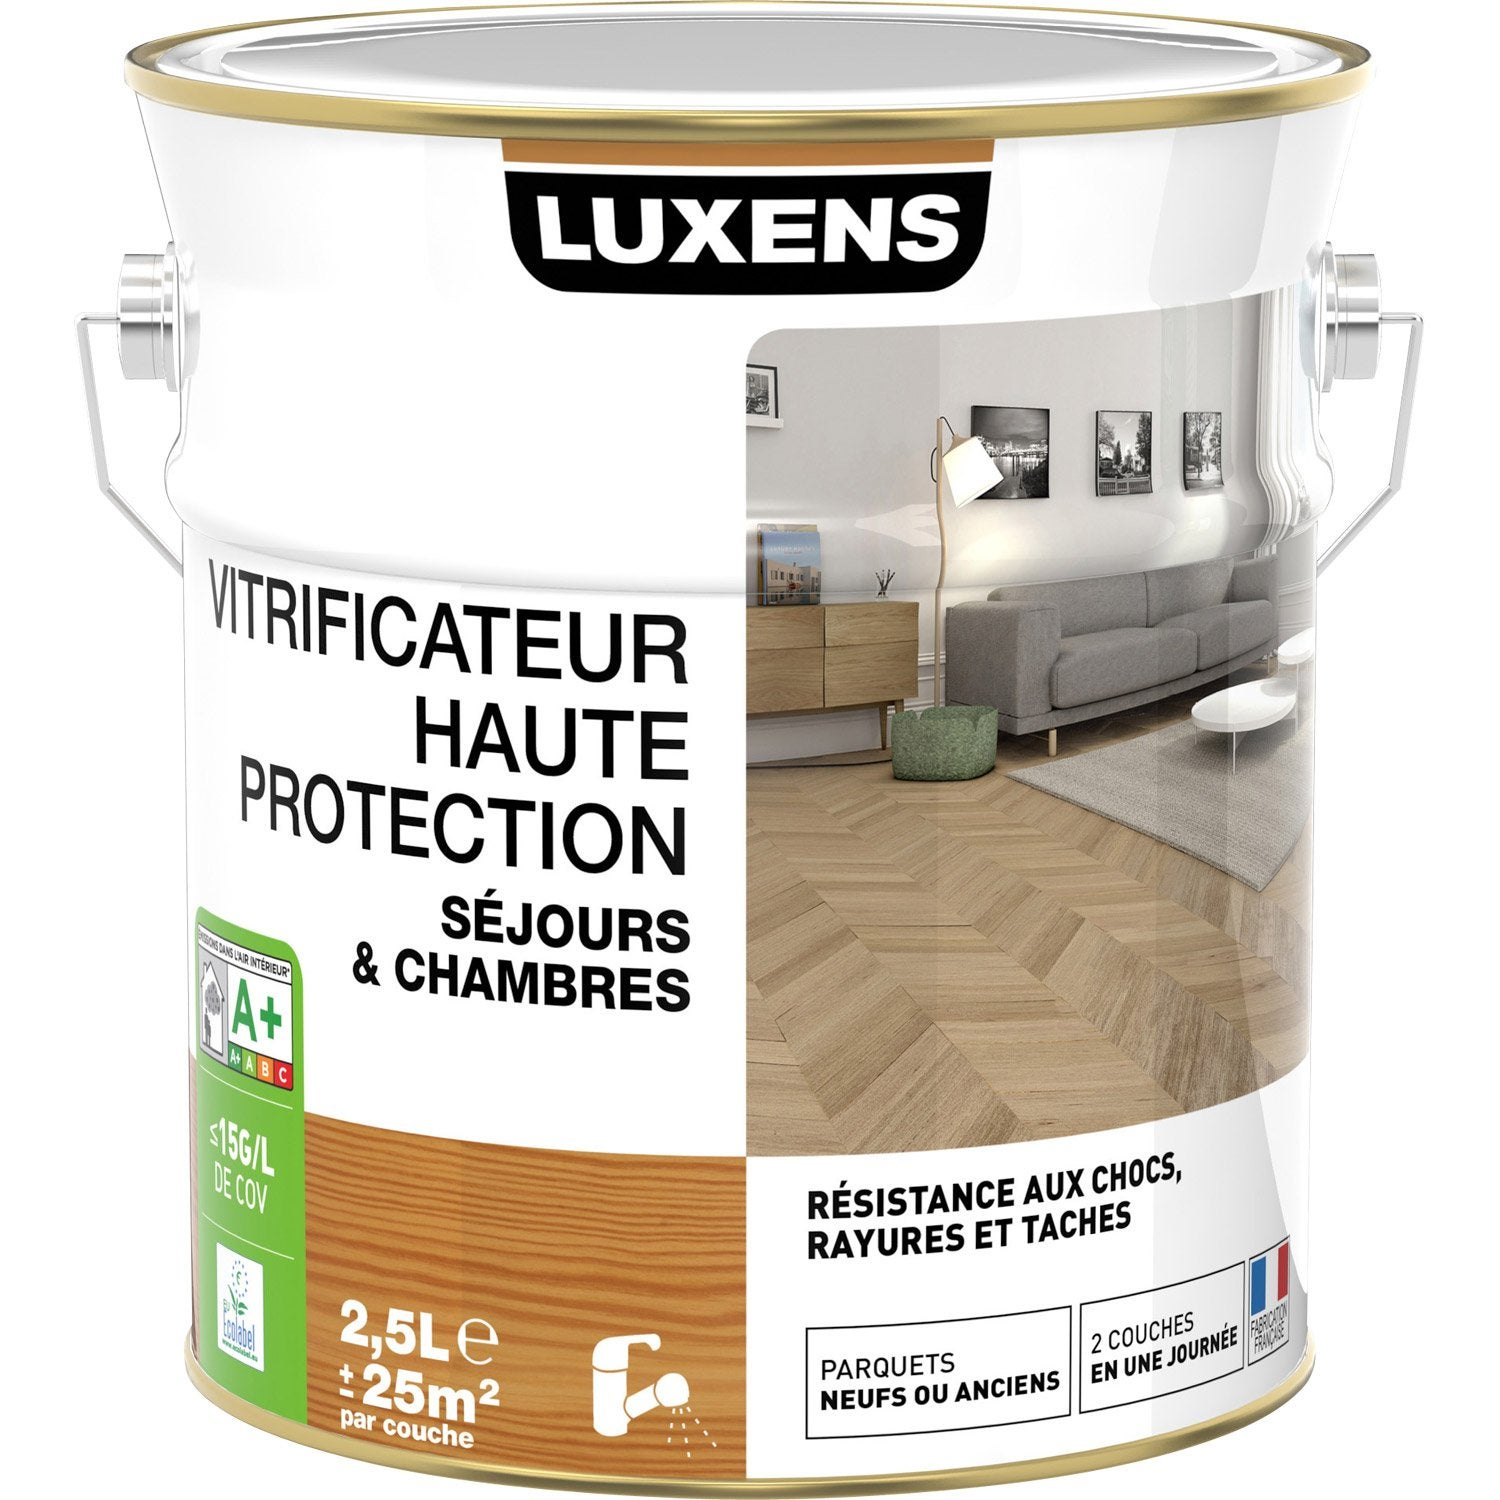 Vitrificateur Parquet : Vitrificateur parquet haute protection luxens incolore